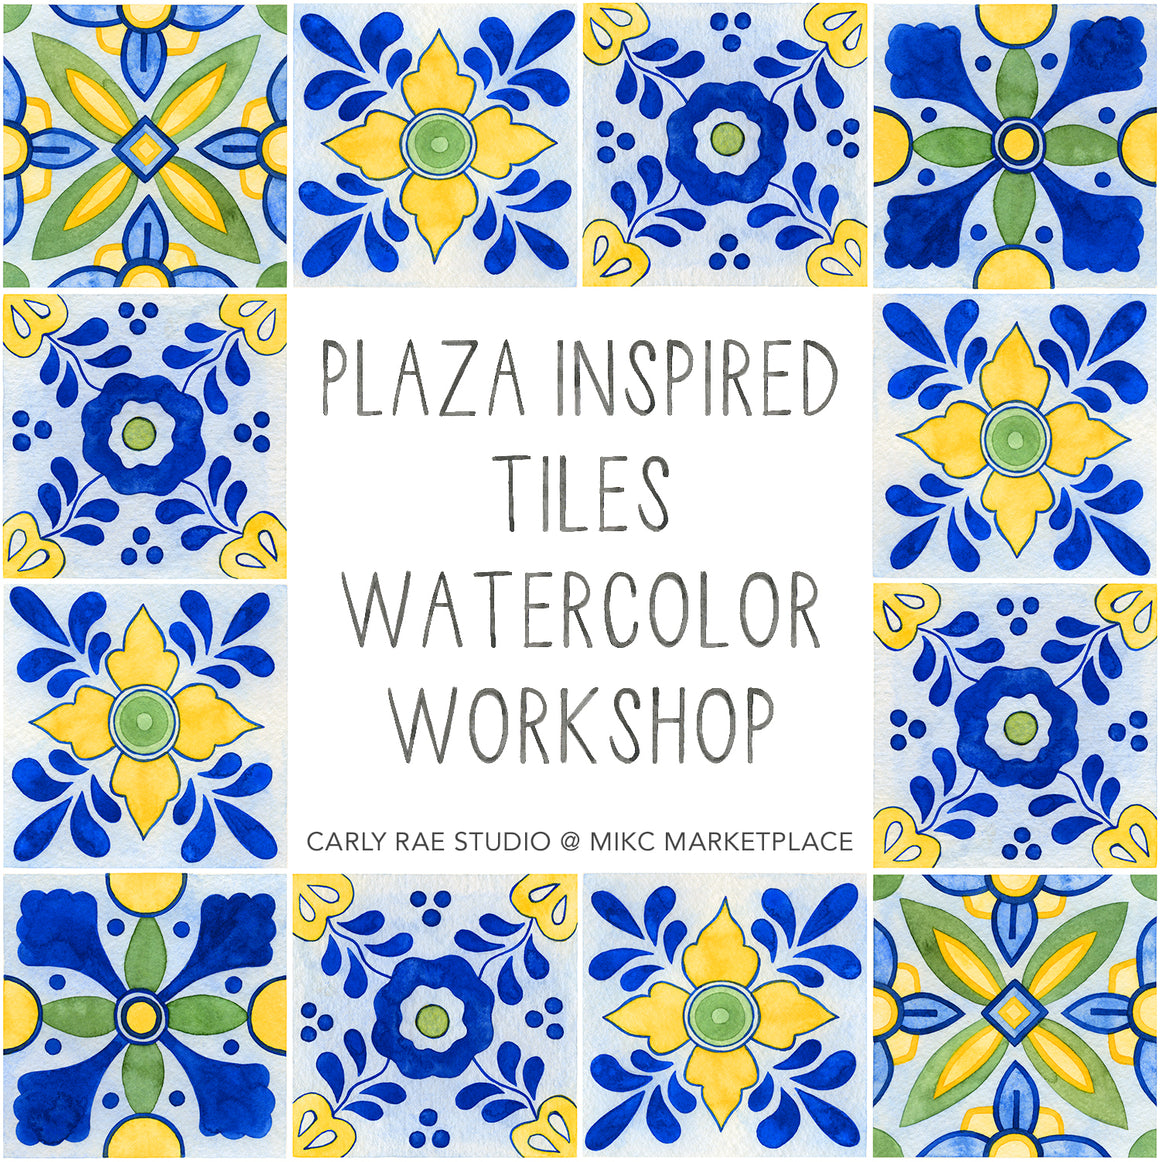 May 21st Plaza-Inspired Tile Watercolor Workshop